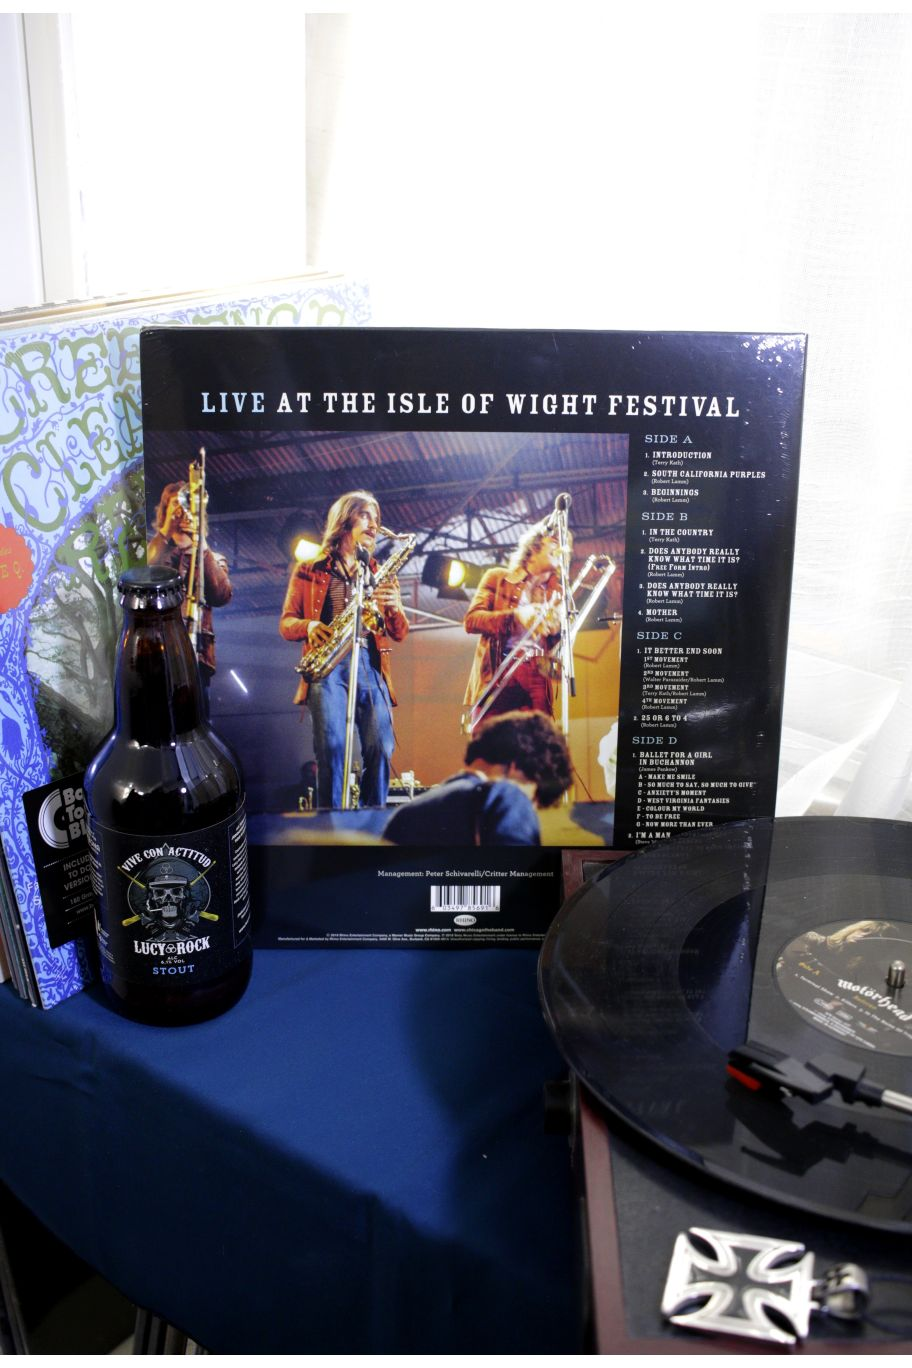 VINILO CHICAGO LIVE AT THE ISLE OF WIGHT FESTIVAL